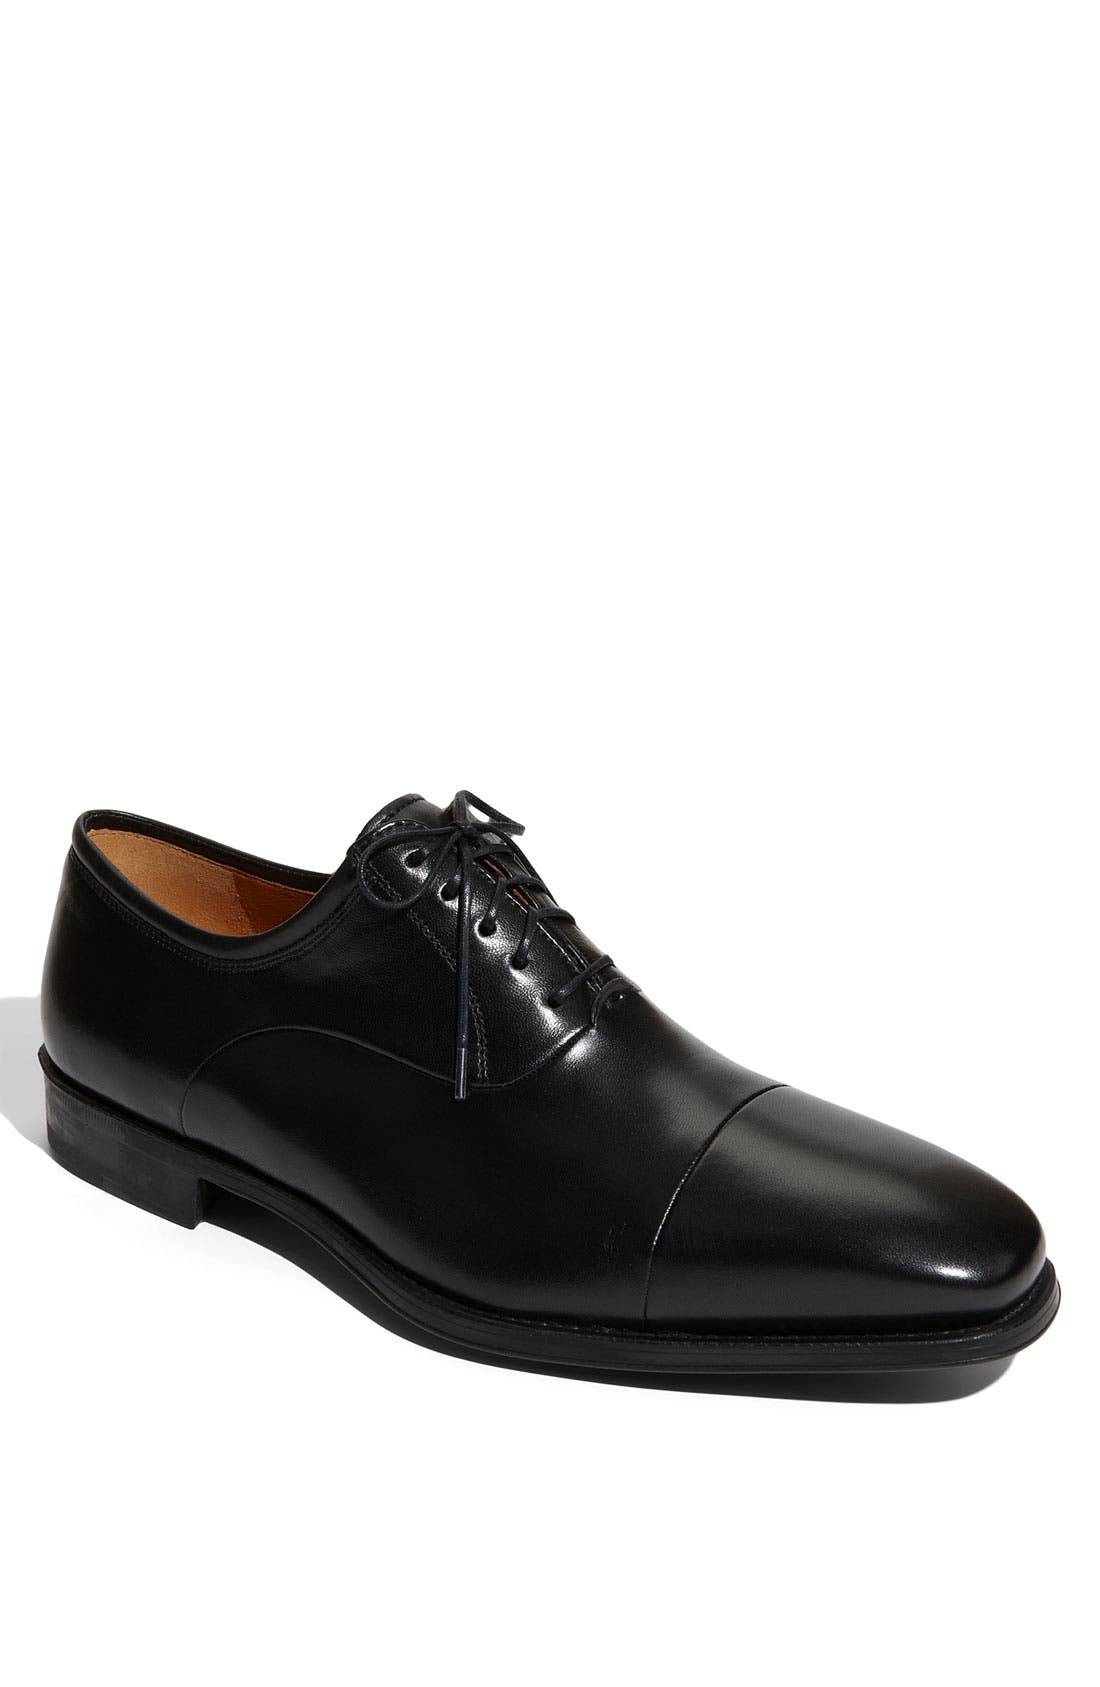 'Federico' Oxford,                         Main,                         color, Black